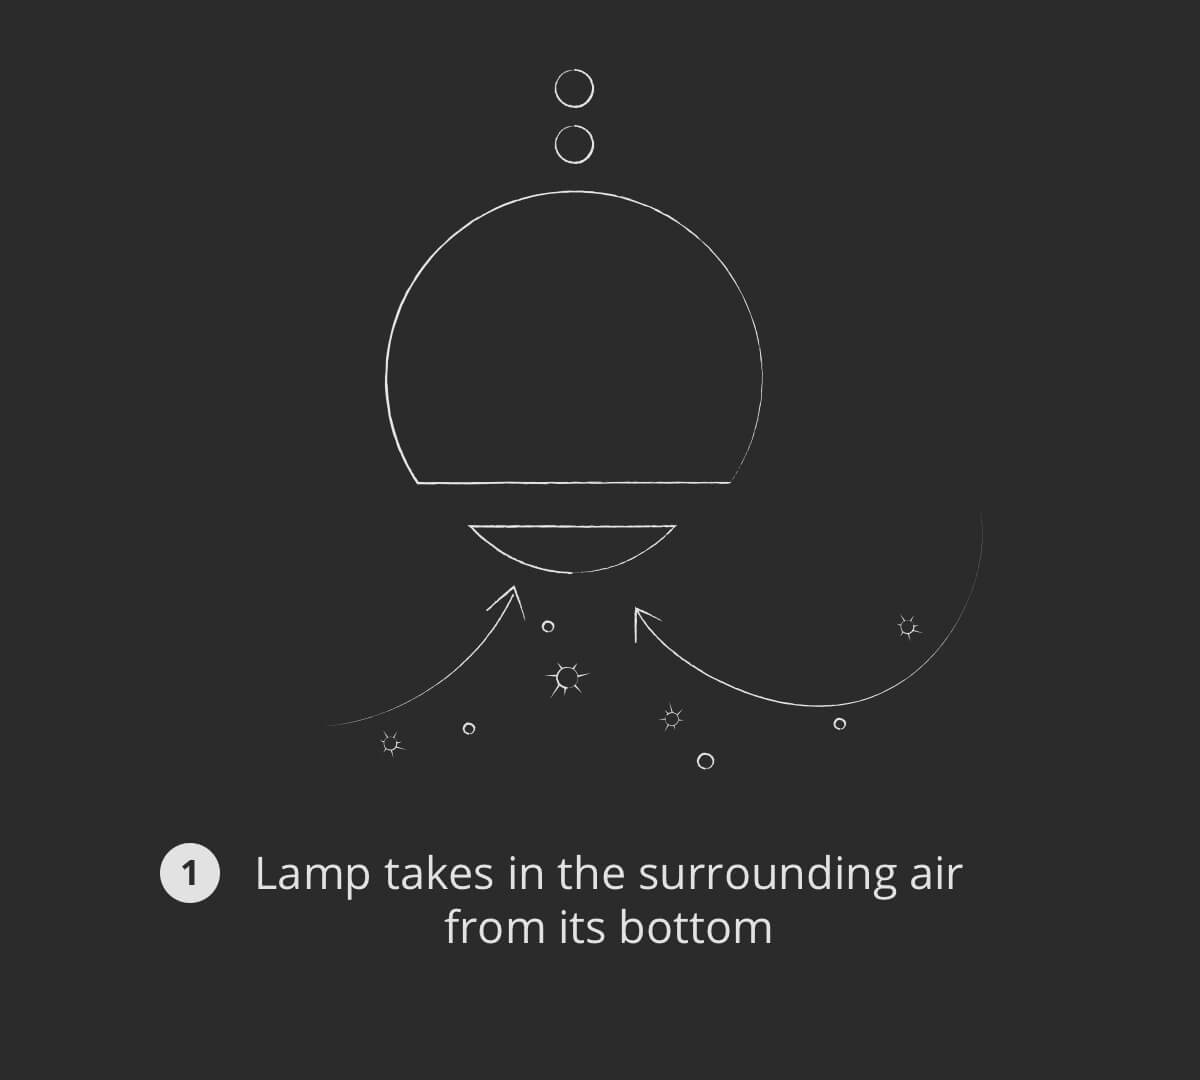 Lamp takes in the surrounding air from its bottom